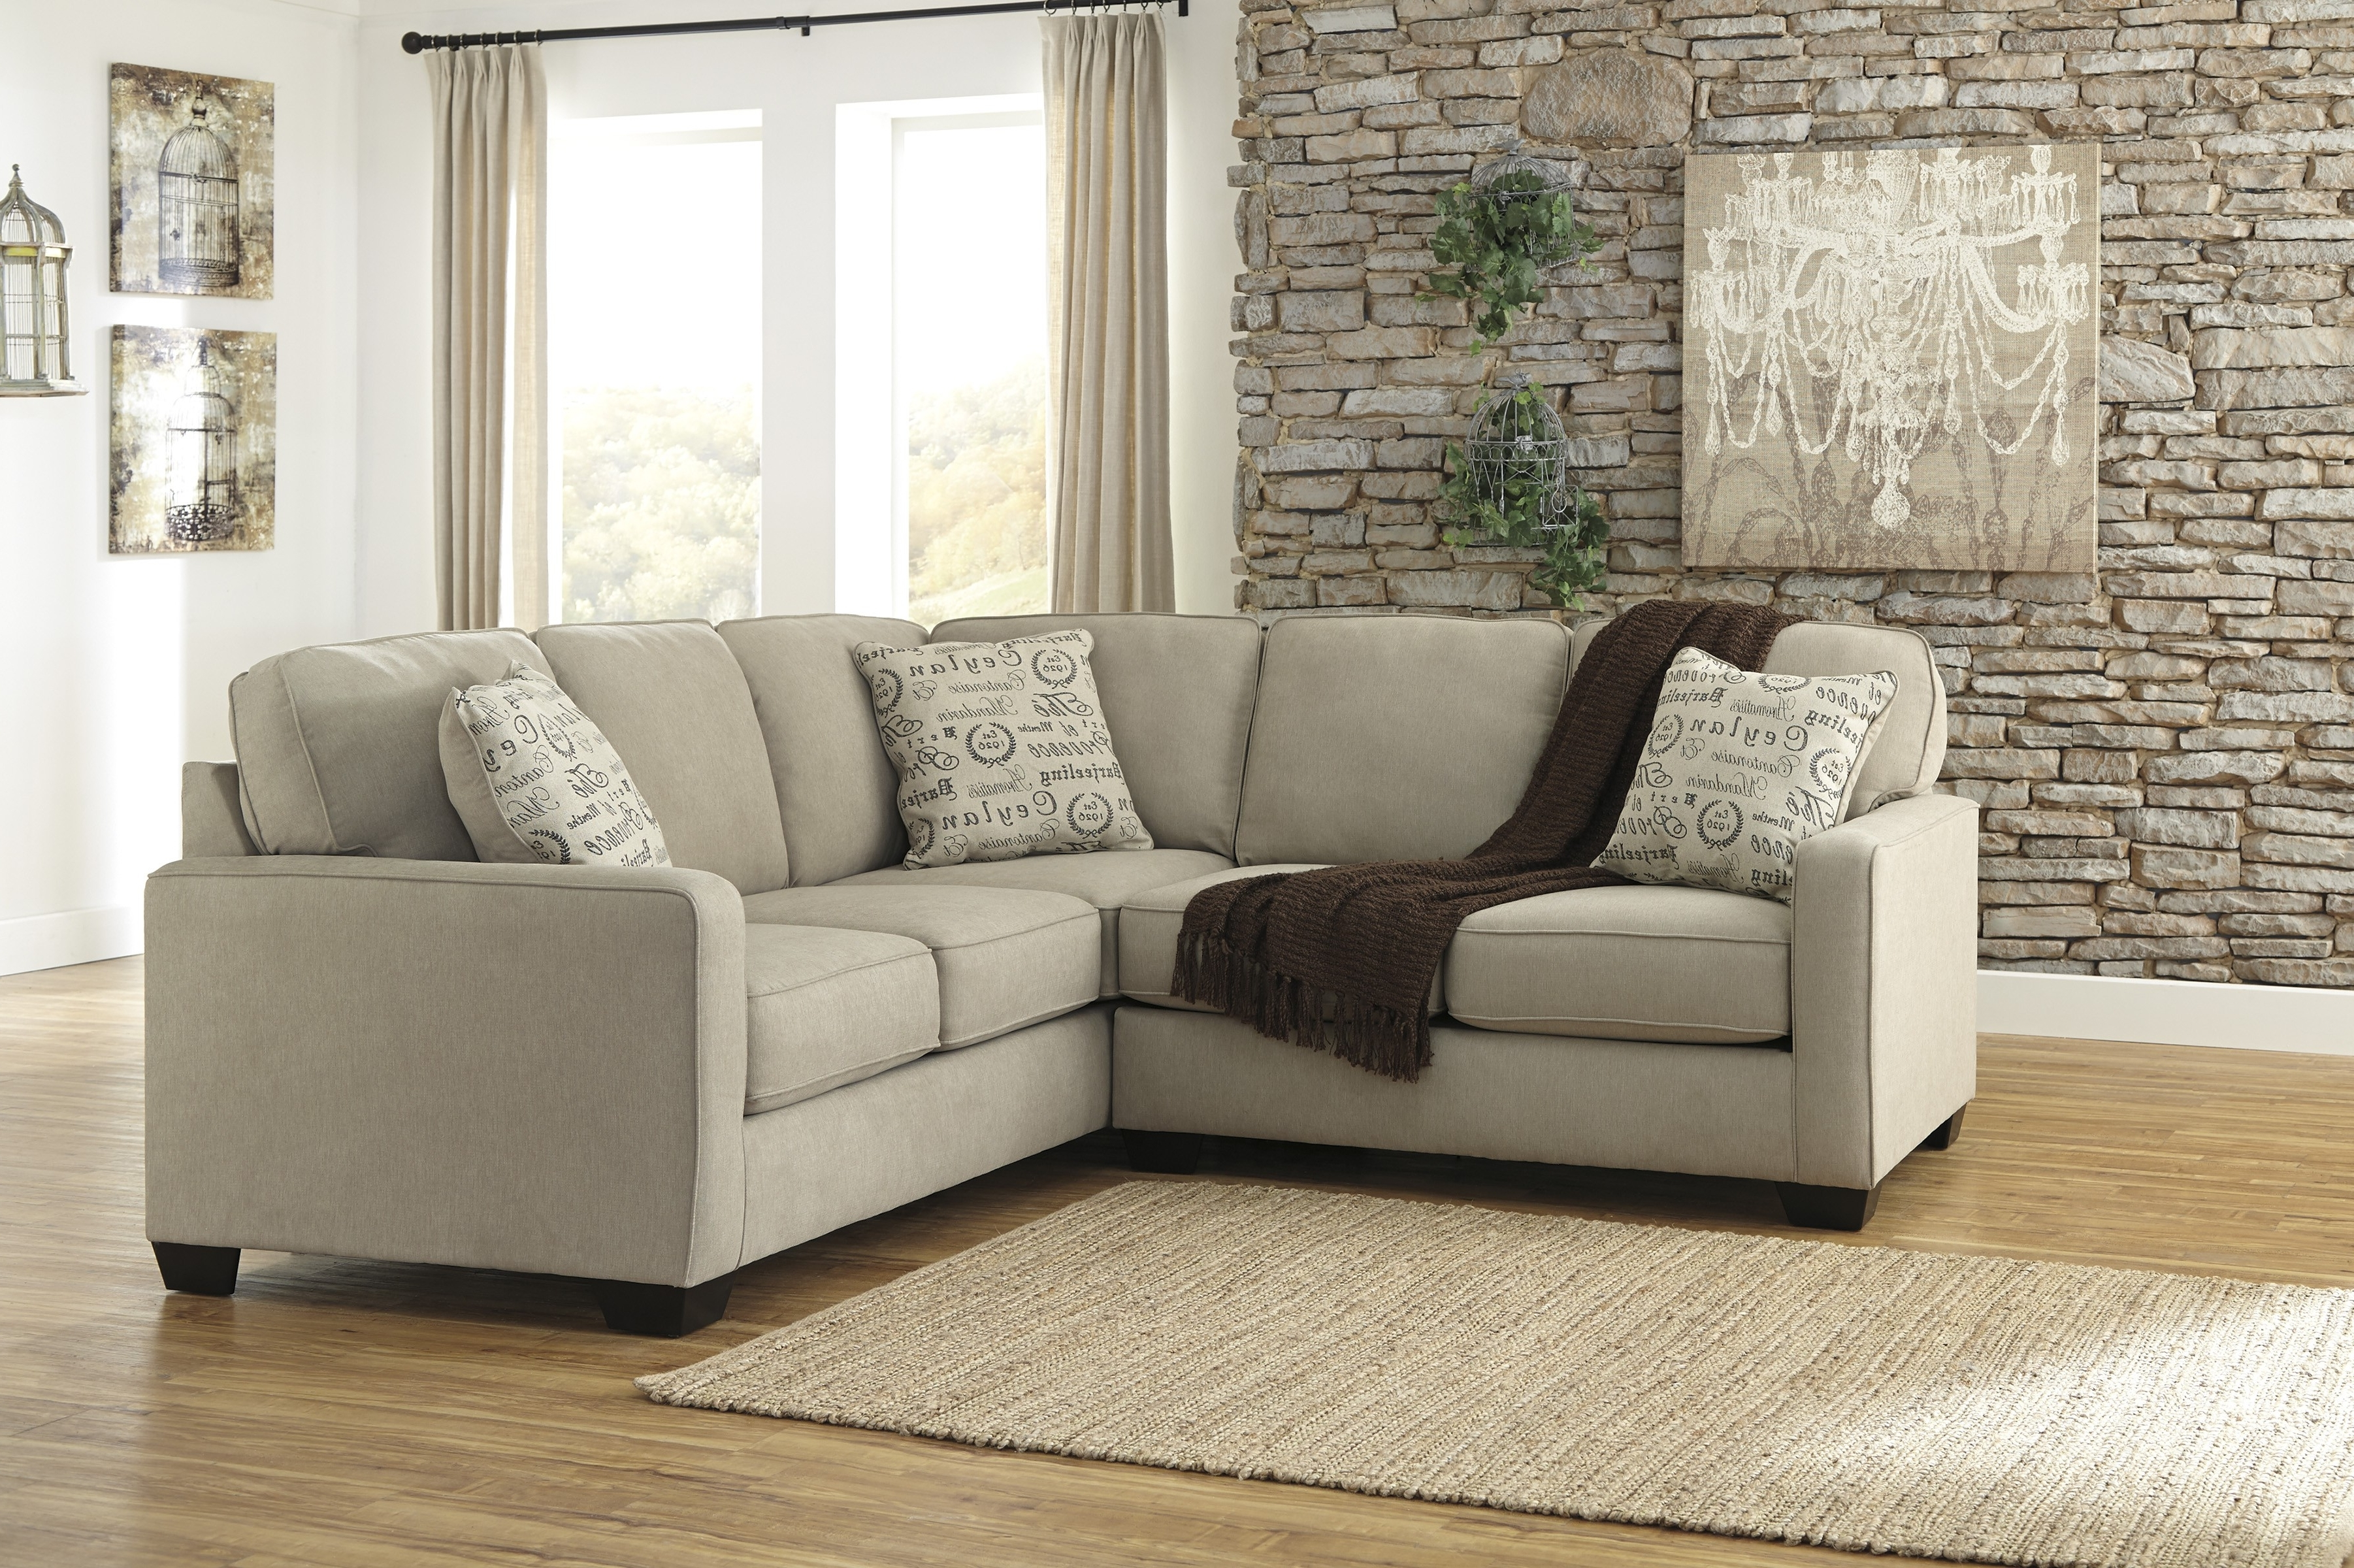 Elk Grove Ca Sectional Sofas Within Well Liked Alenya Quartz 2 Piece Sectional Sofa For $794.00 – Furnitureusa (Gallery 6 of 20)